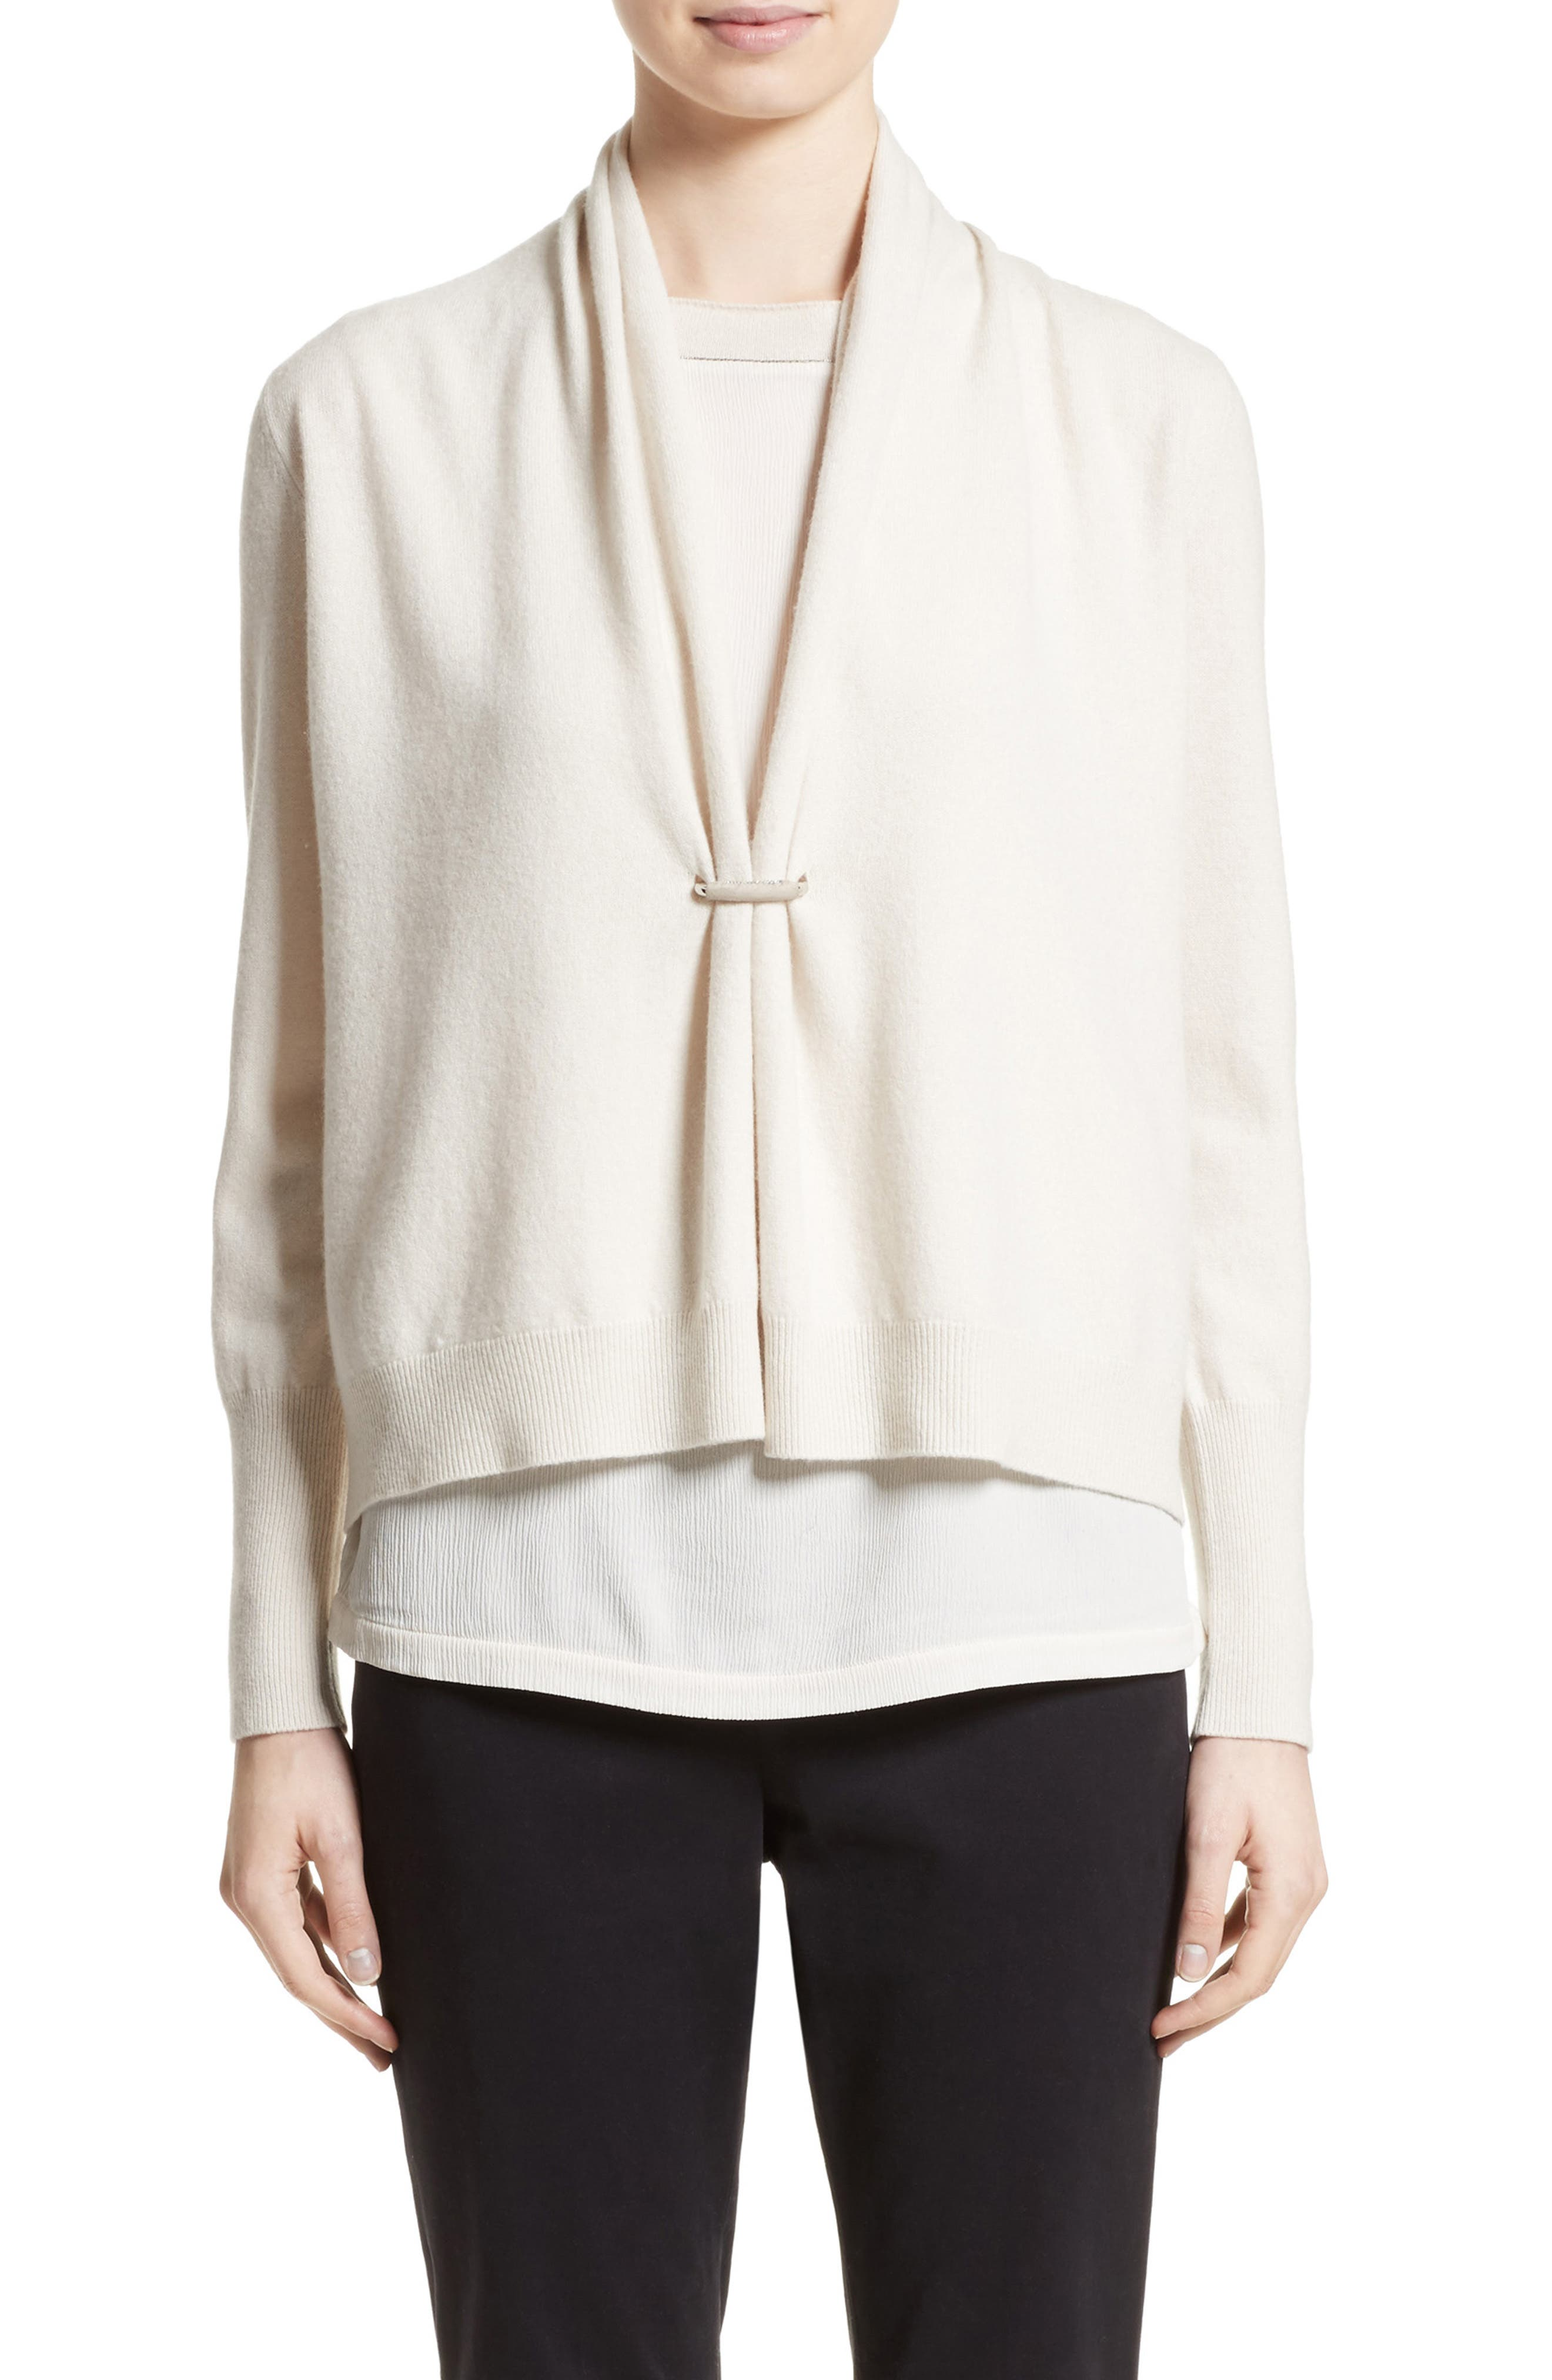 Fabiana Filippi Wool, Silk & Cashmere Shawl Collar Cardigan